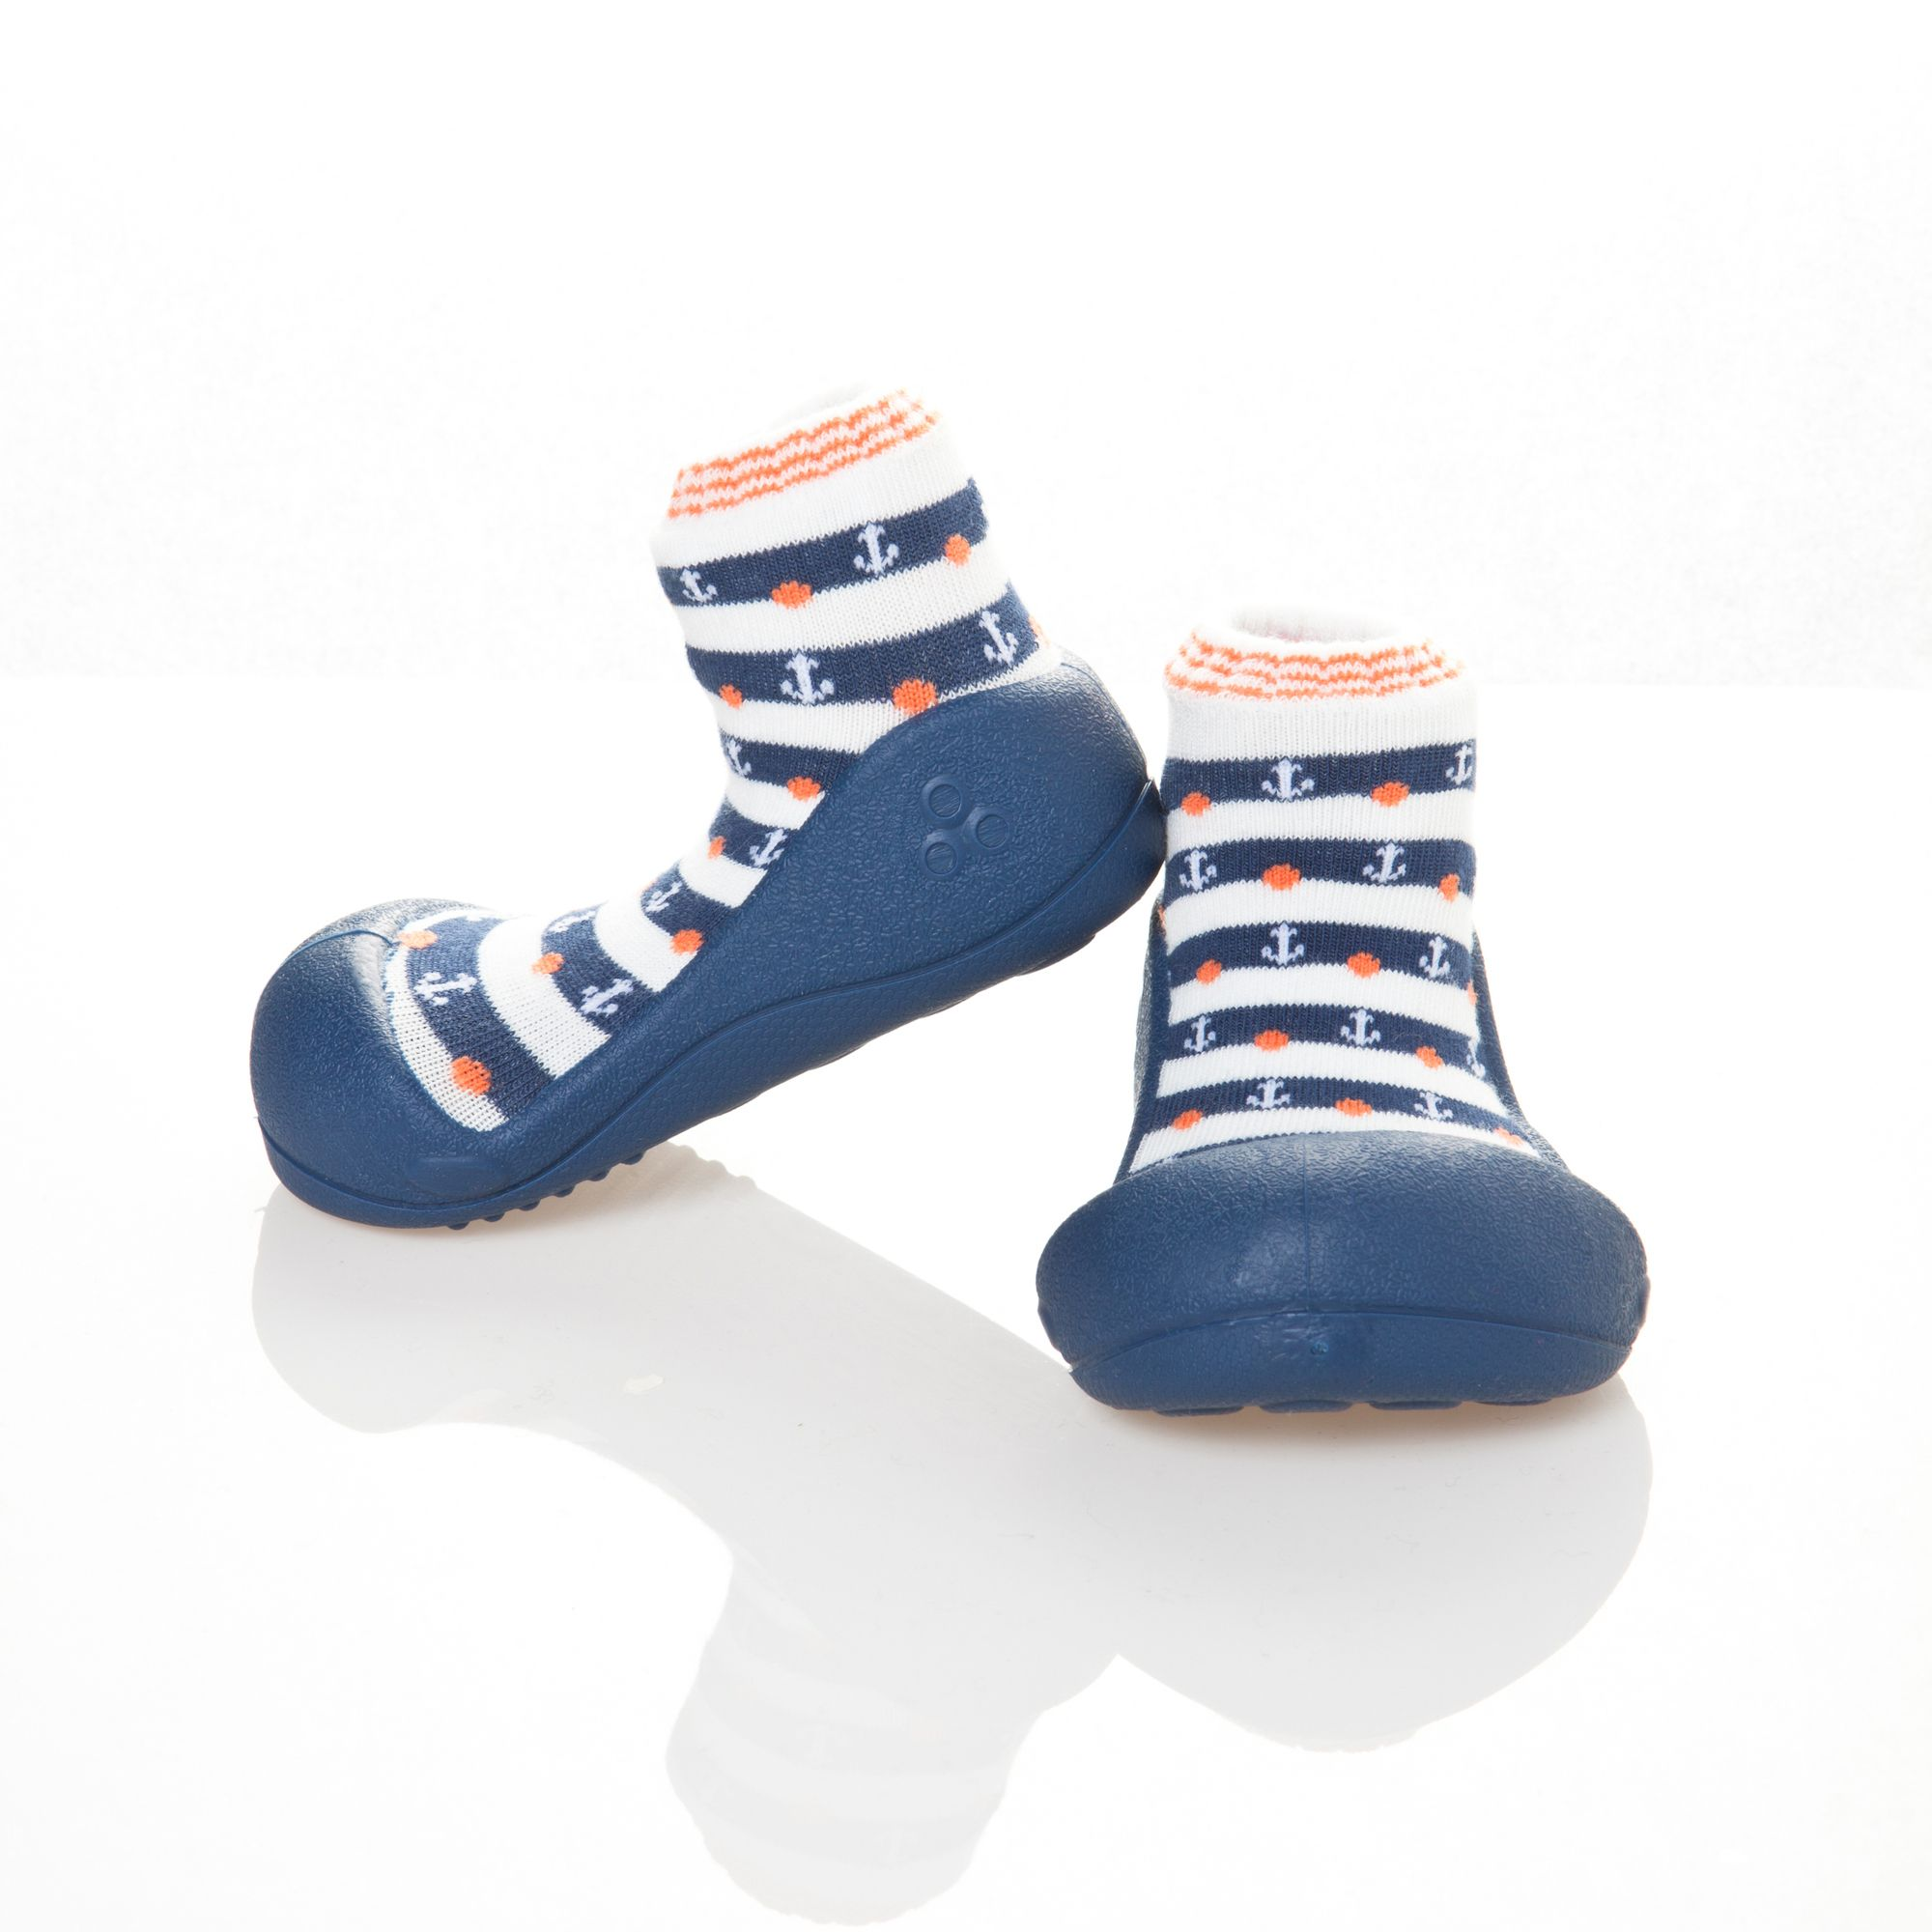 Attipas are a world first in girls shoes online as light